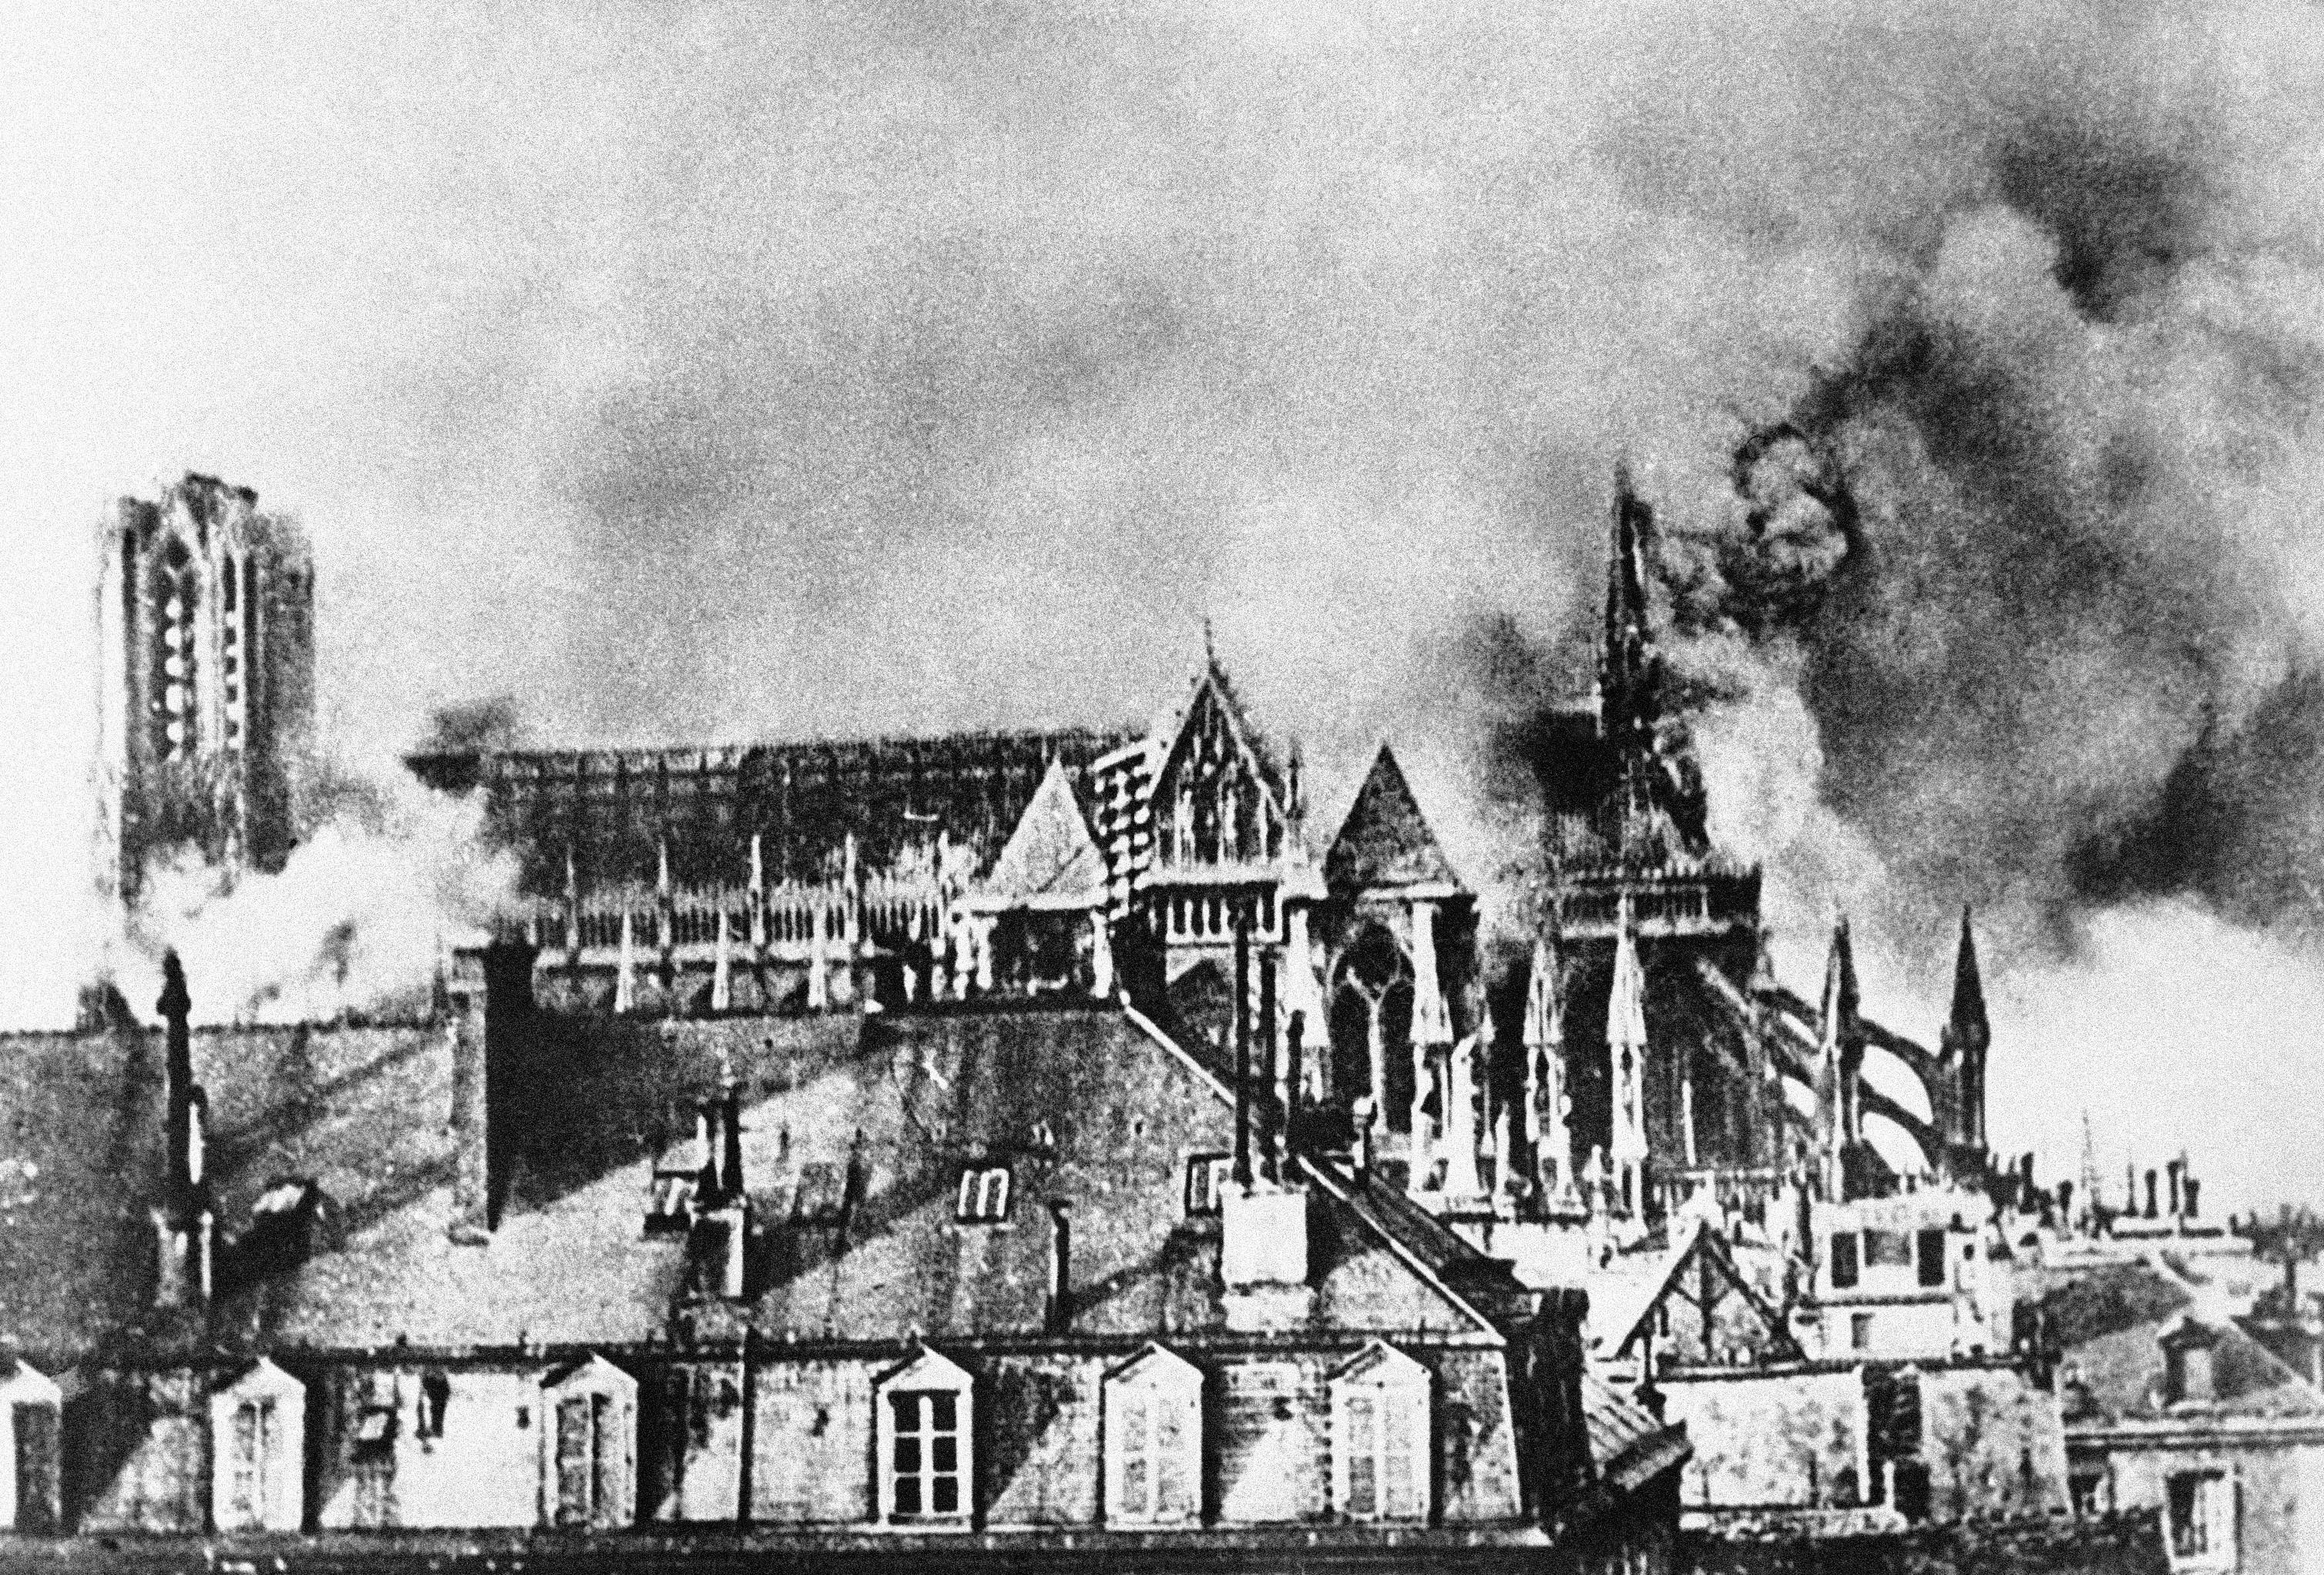 13 OF 100: In this September 1914 file photo, the Cathedral of Reims, France smokes after bombardment during World War I. The advancing German army heavily damaged the city.